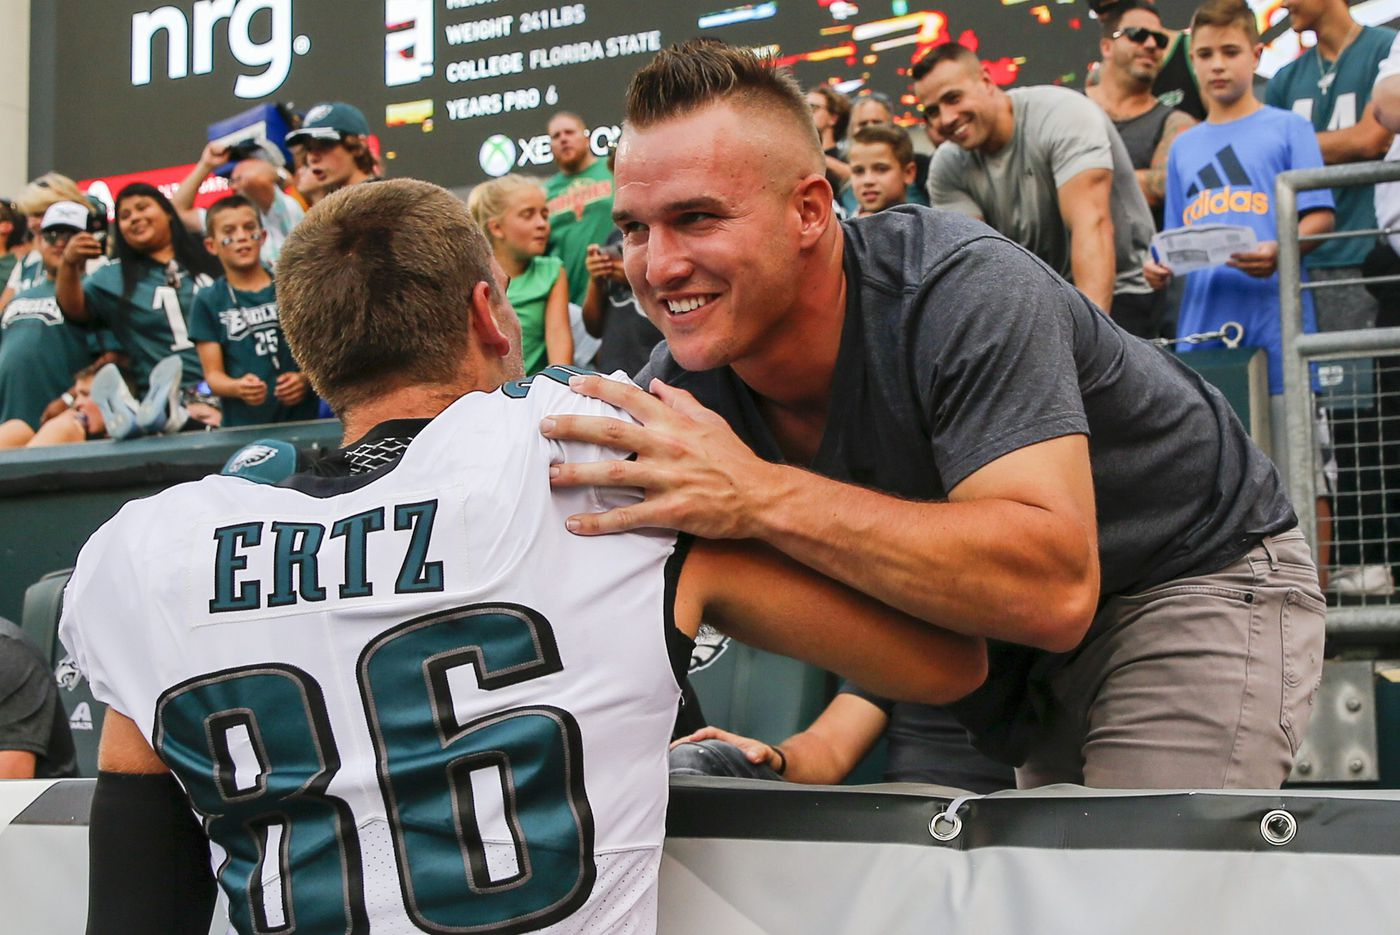 Want to market Mike Trout? Bring him to Philly | Extra Innings